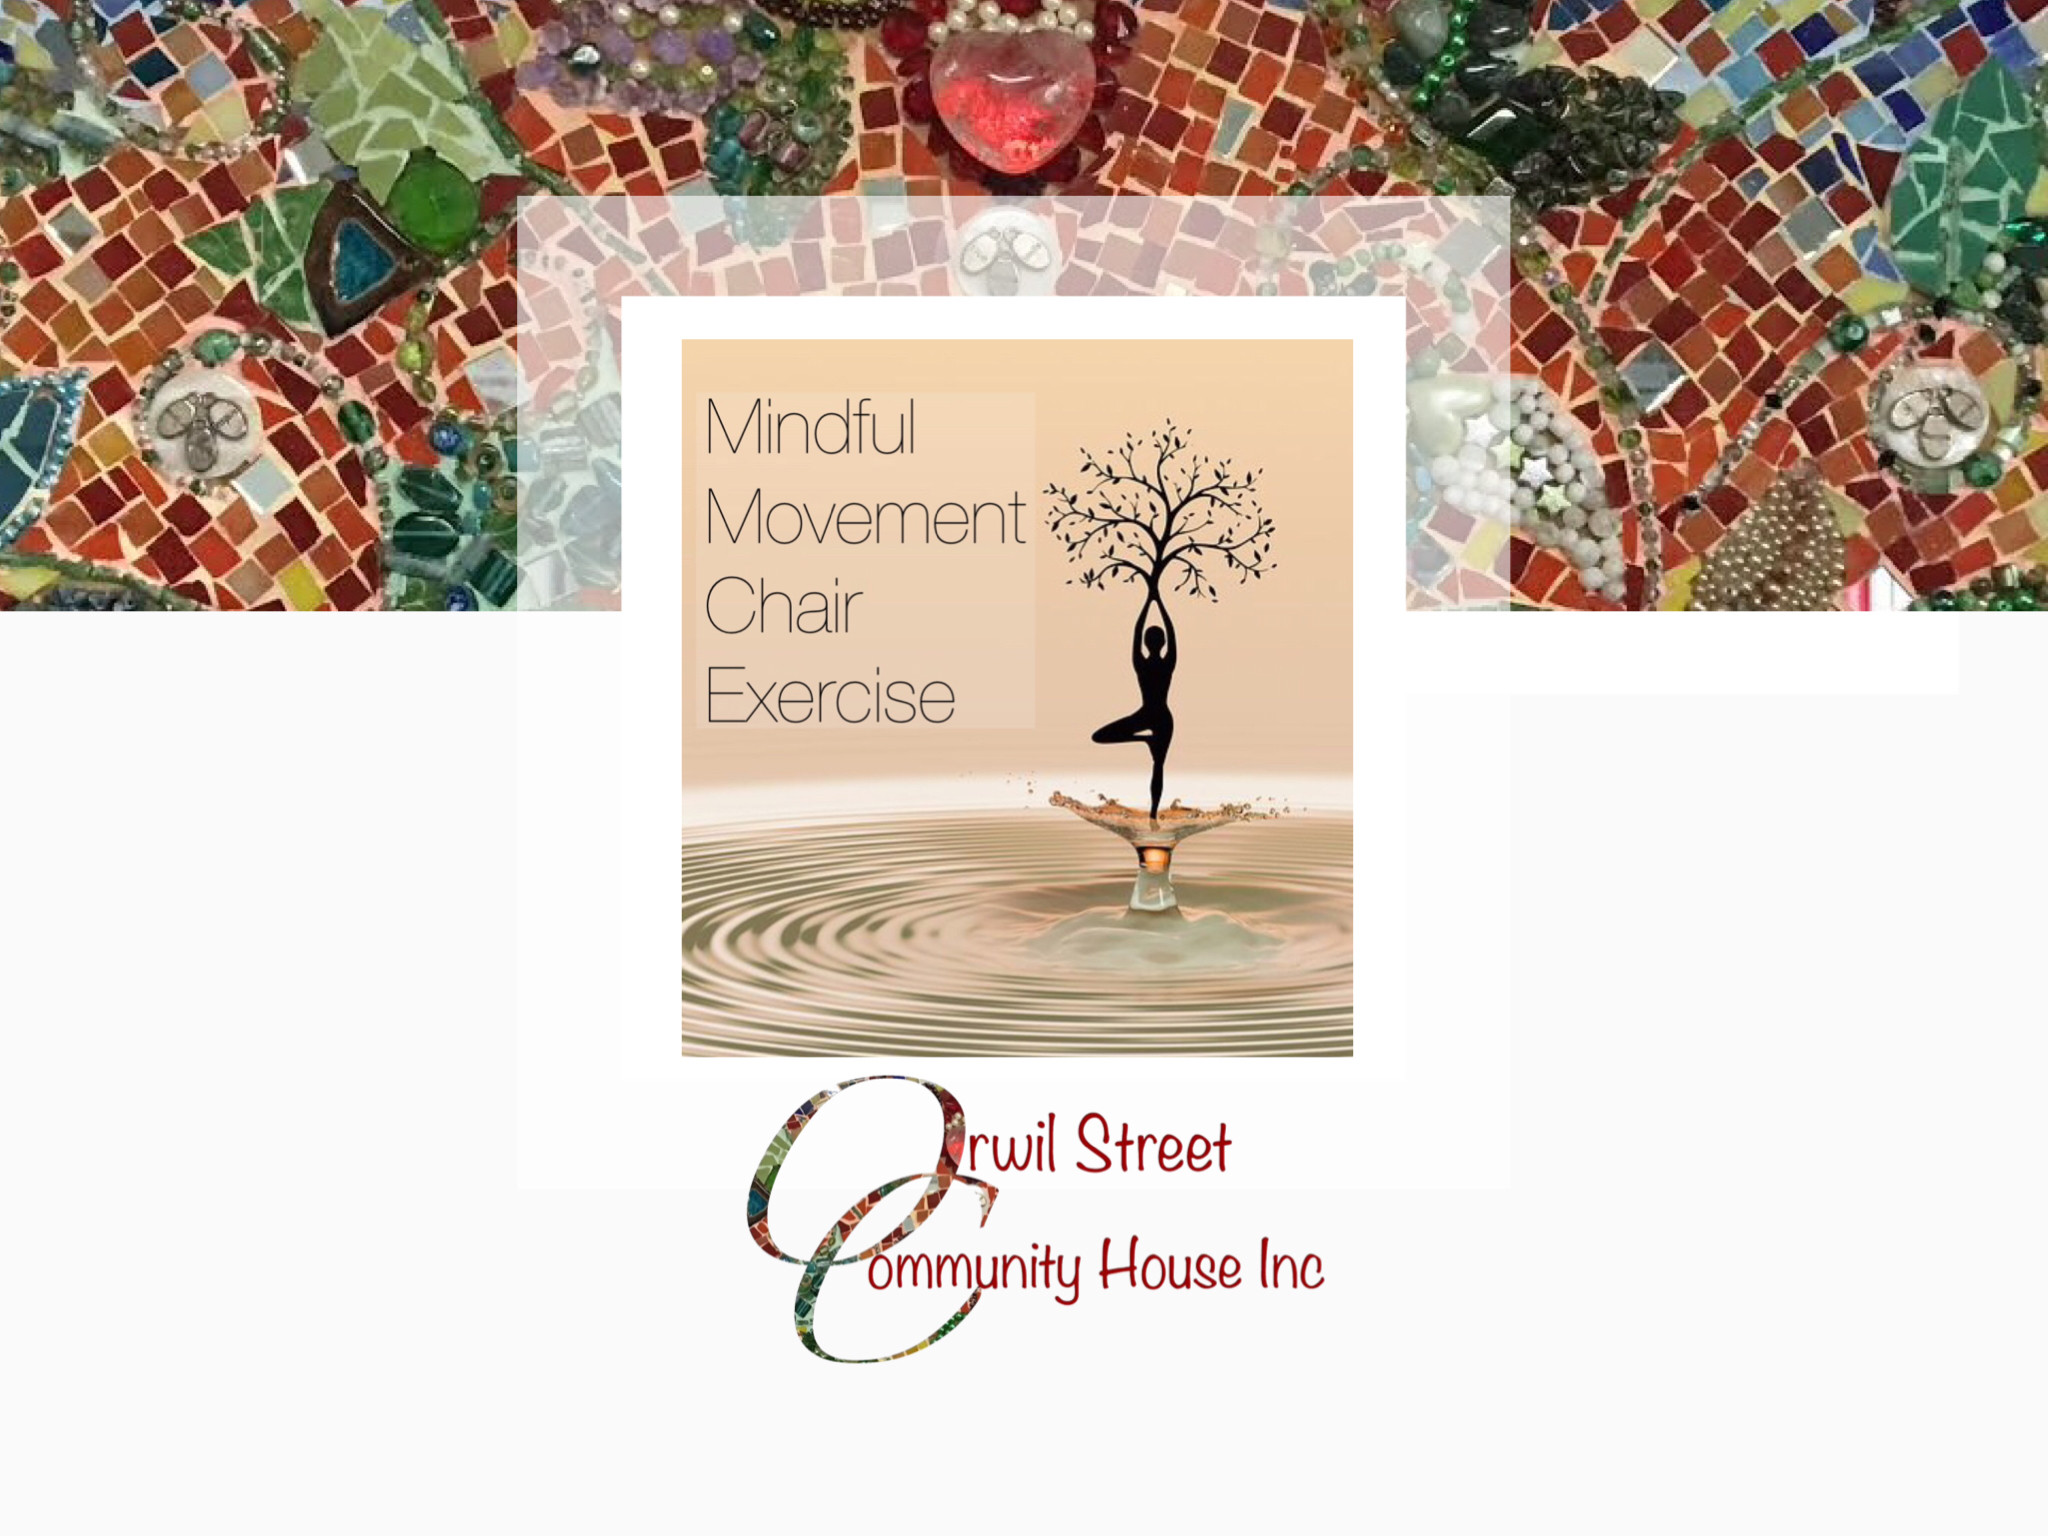 Mindful Movement Chair Exercise